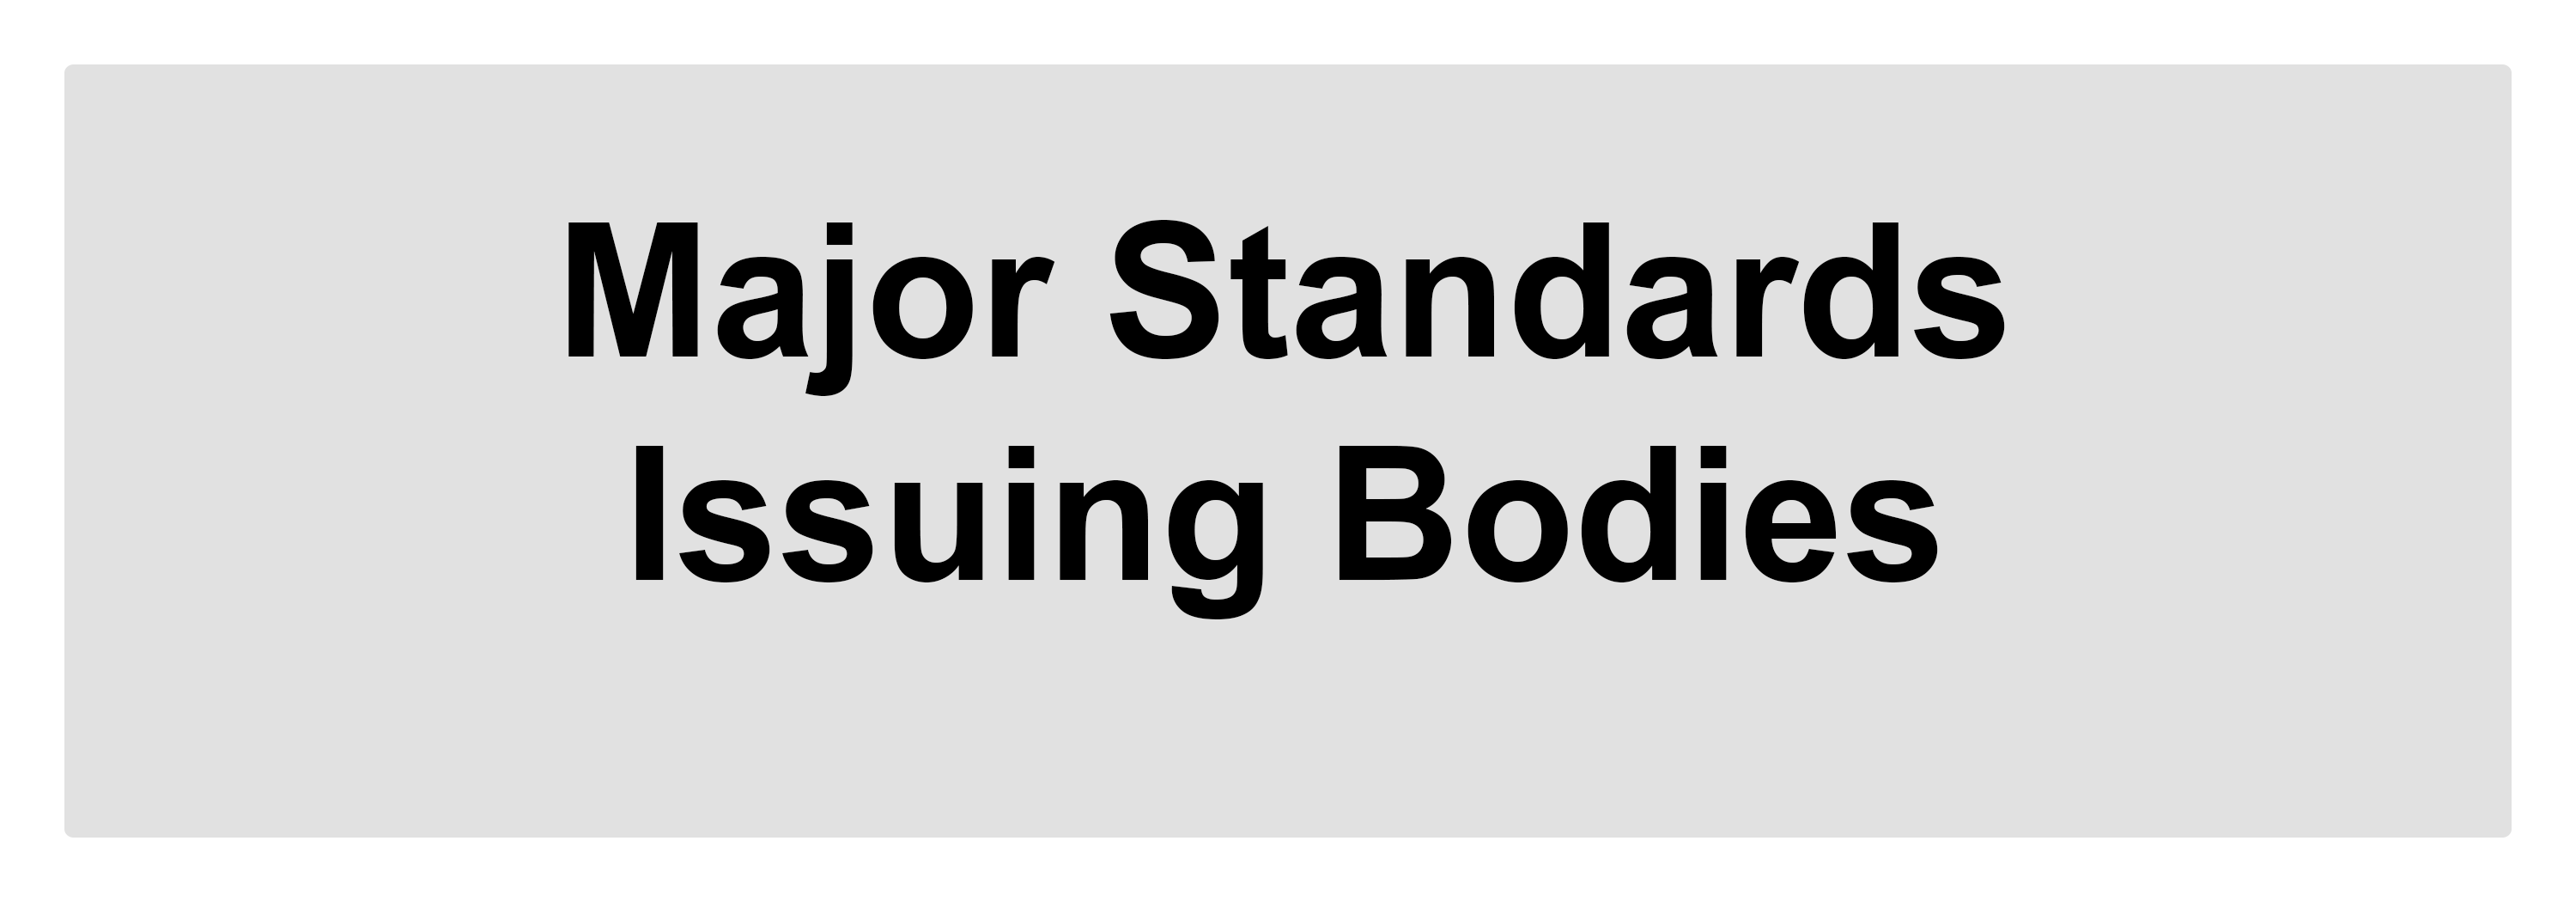 Major Standards Issuing Bodies, click to be access information tab.